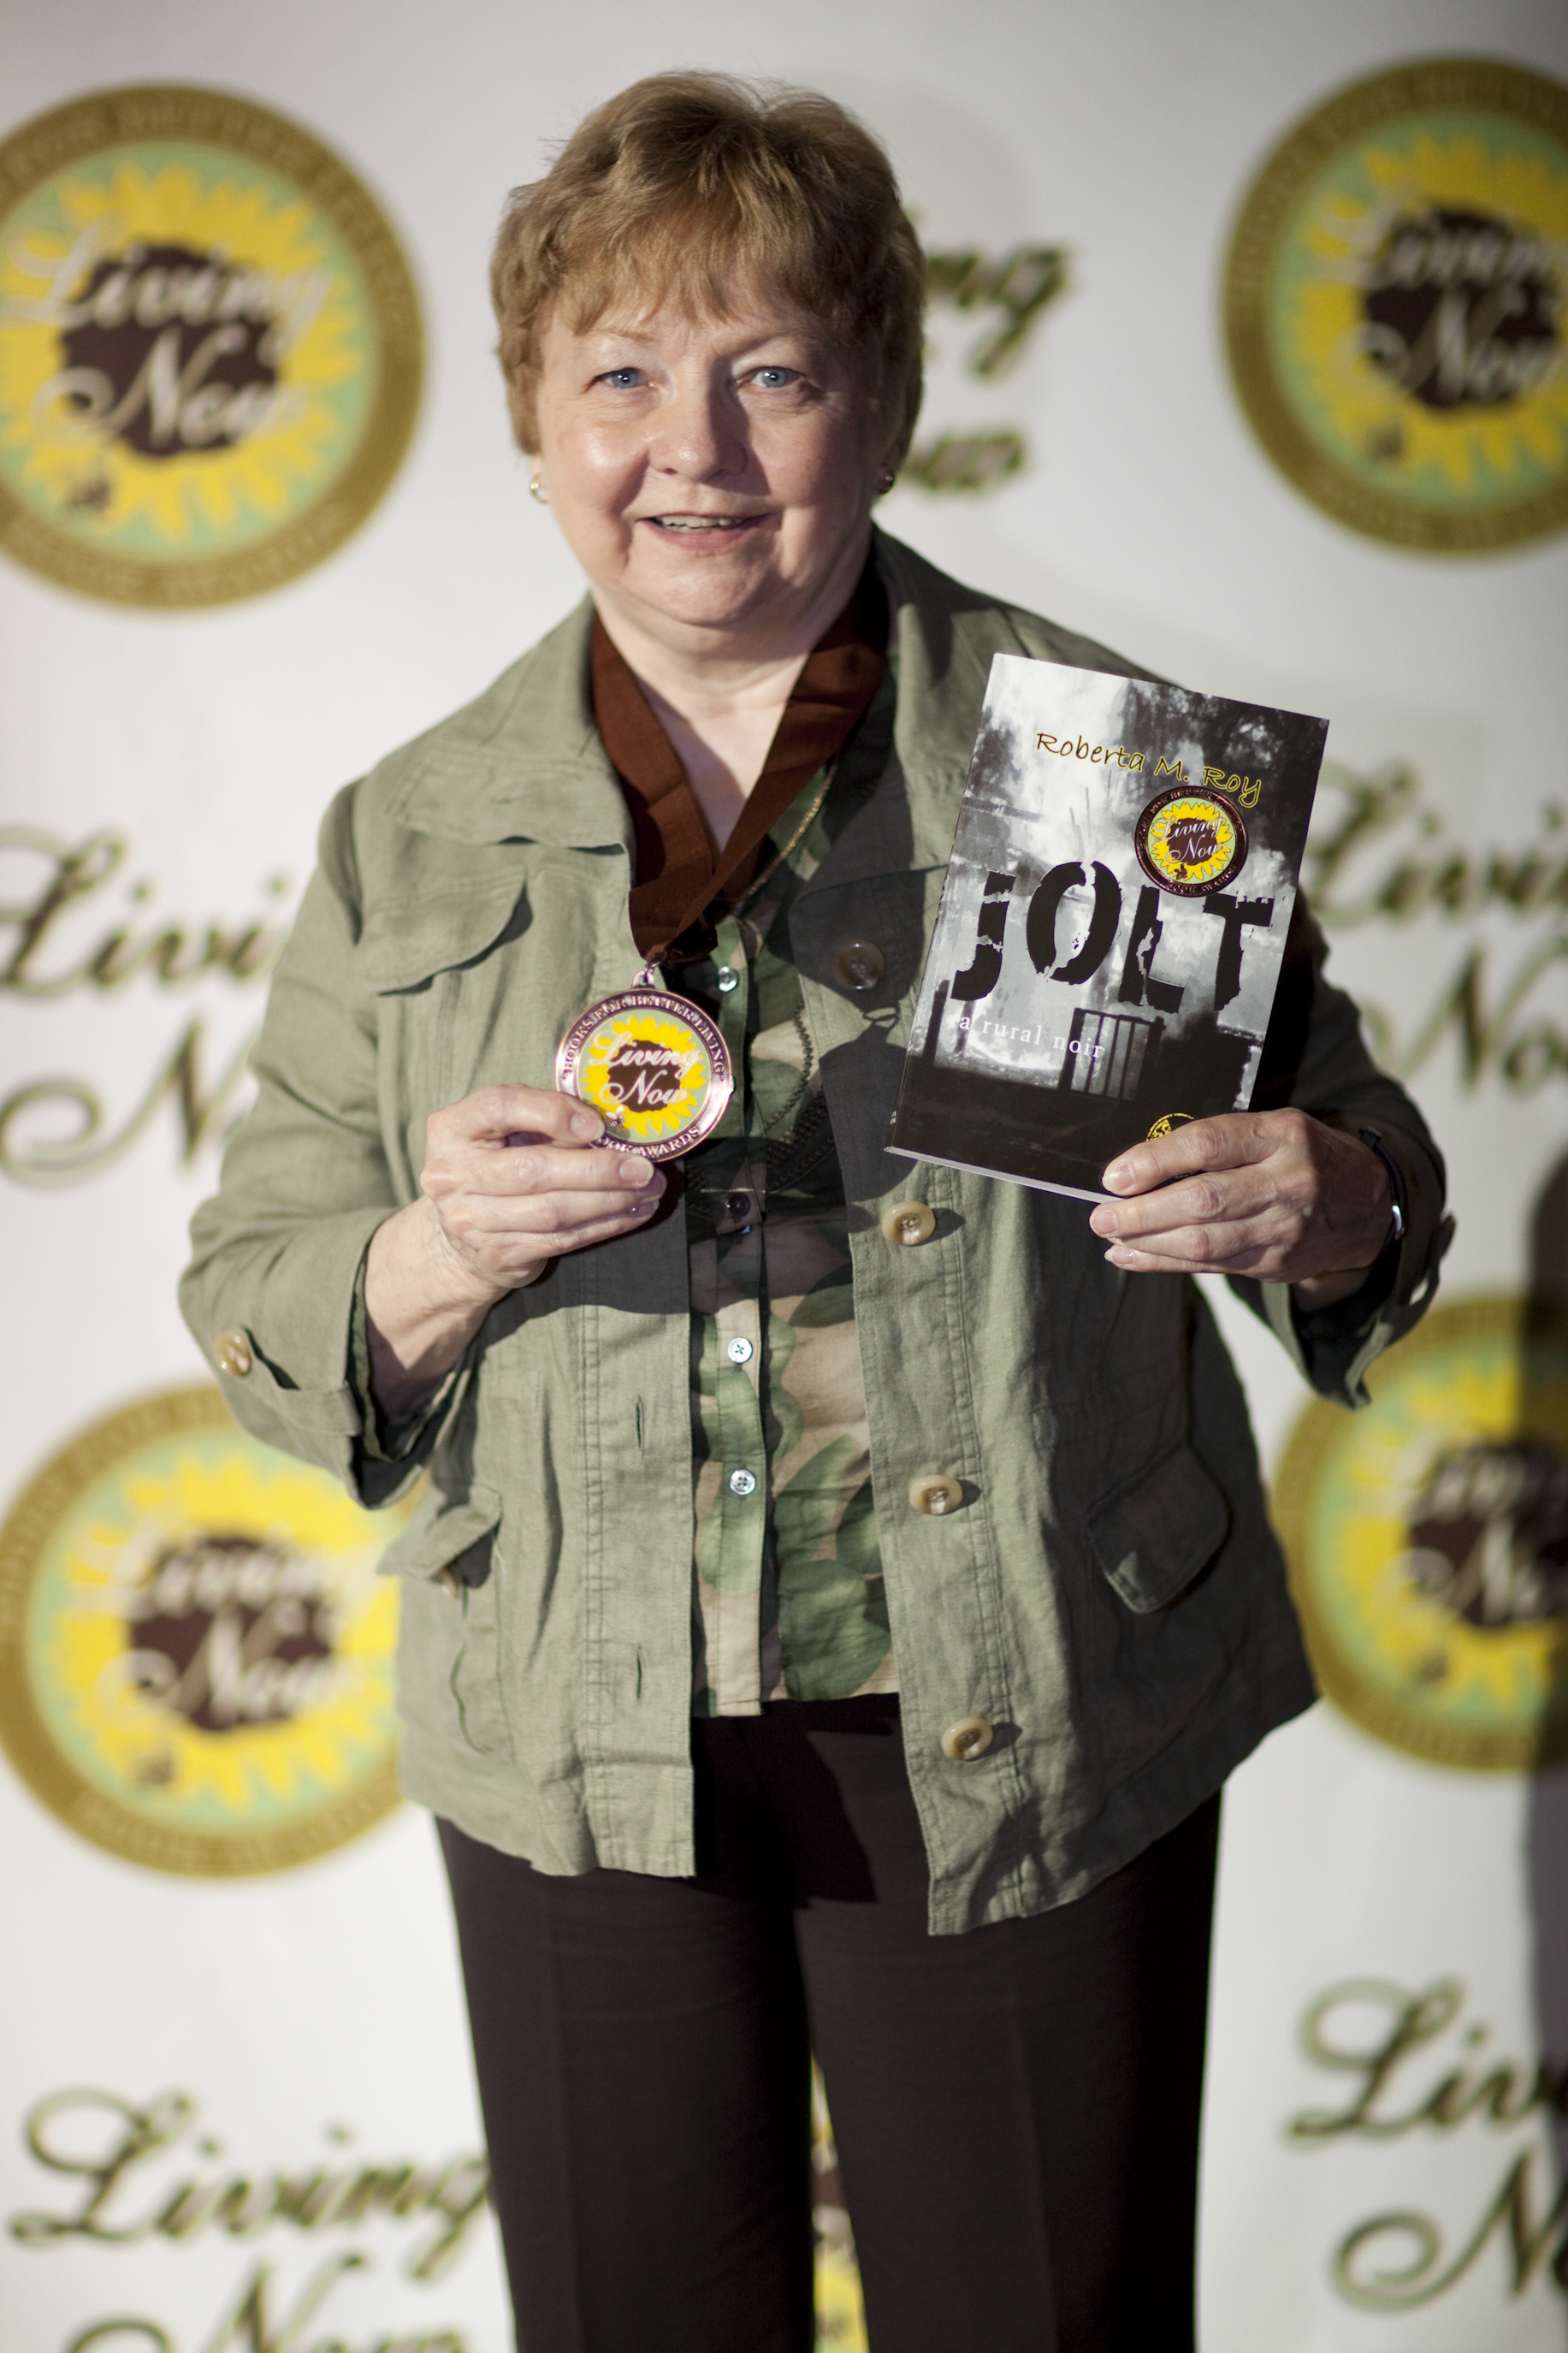 Roberta M Roy - Not too Proud! At the 2011 Living Now Awards